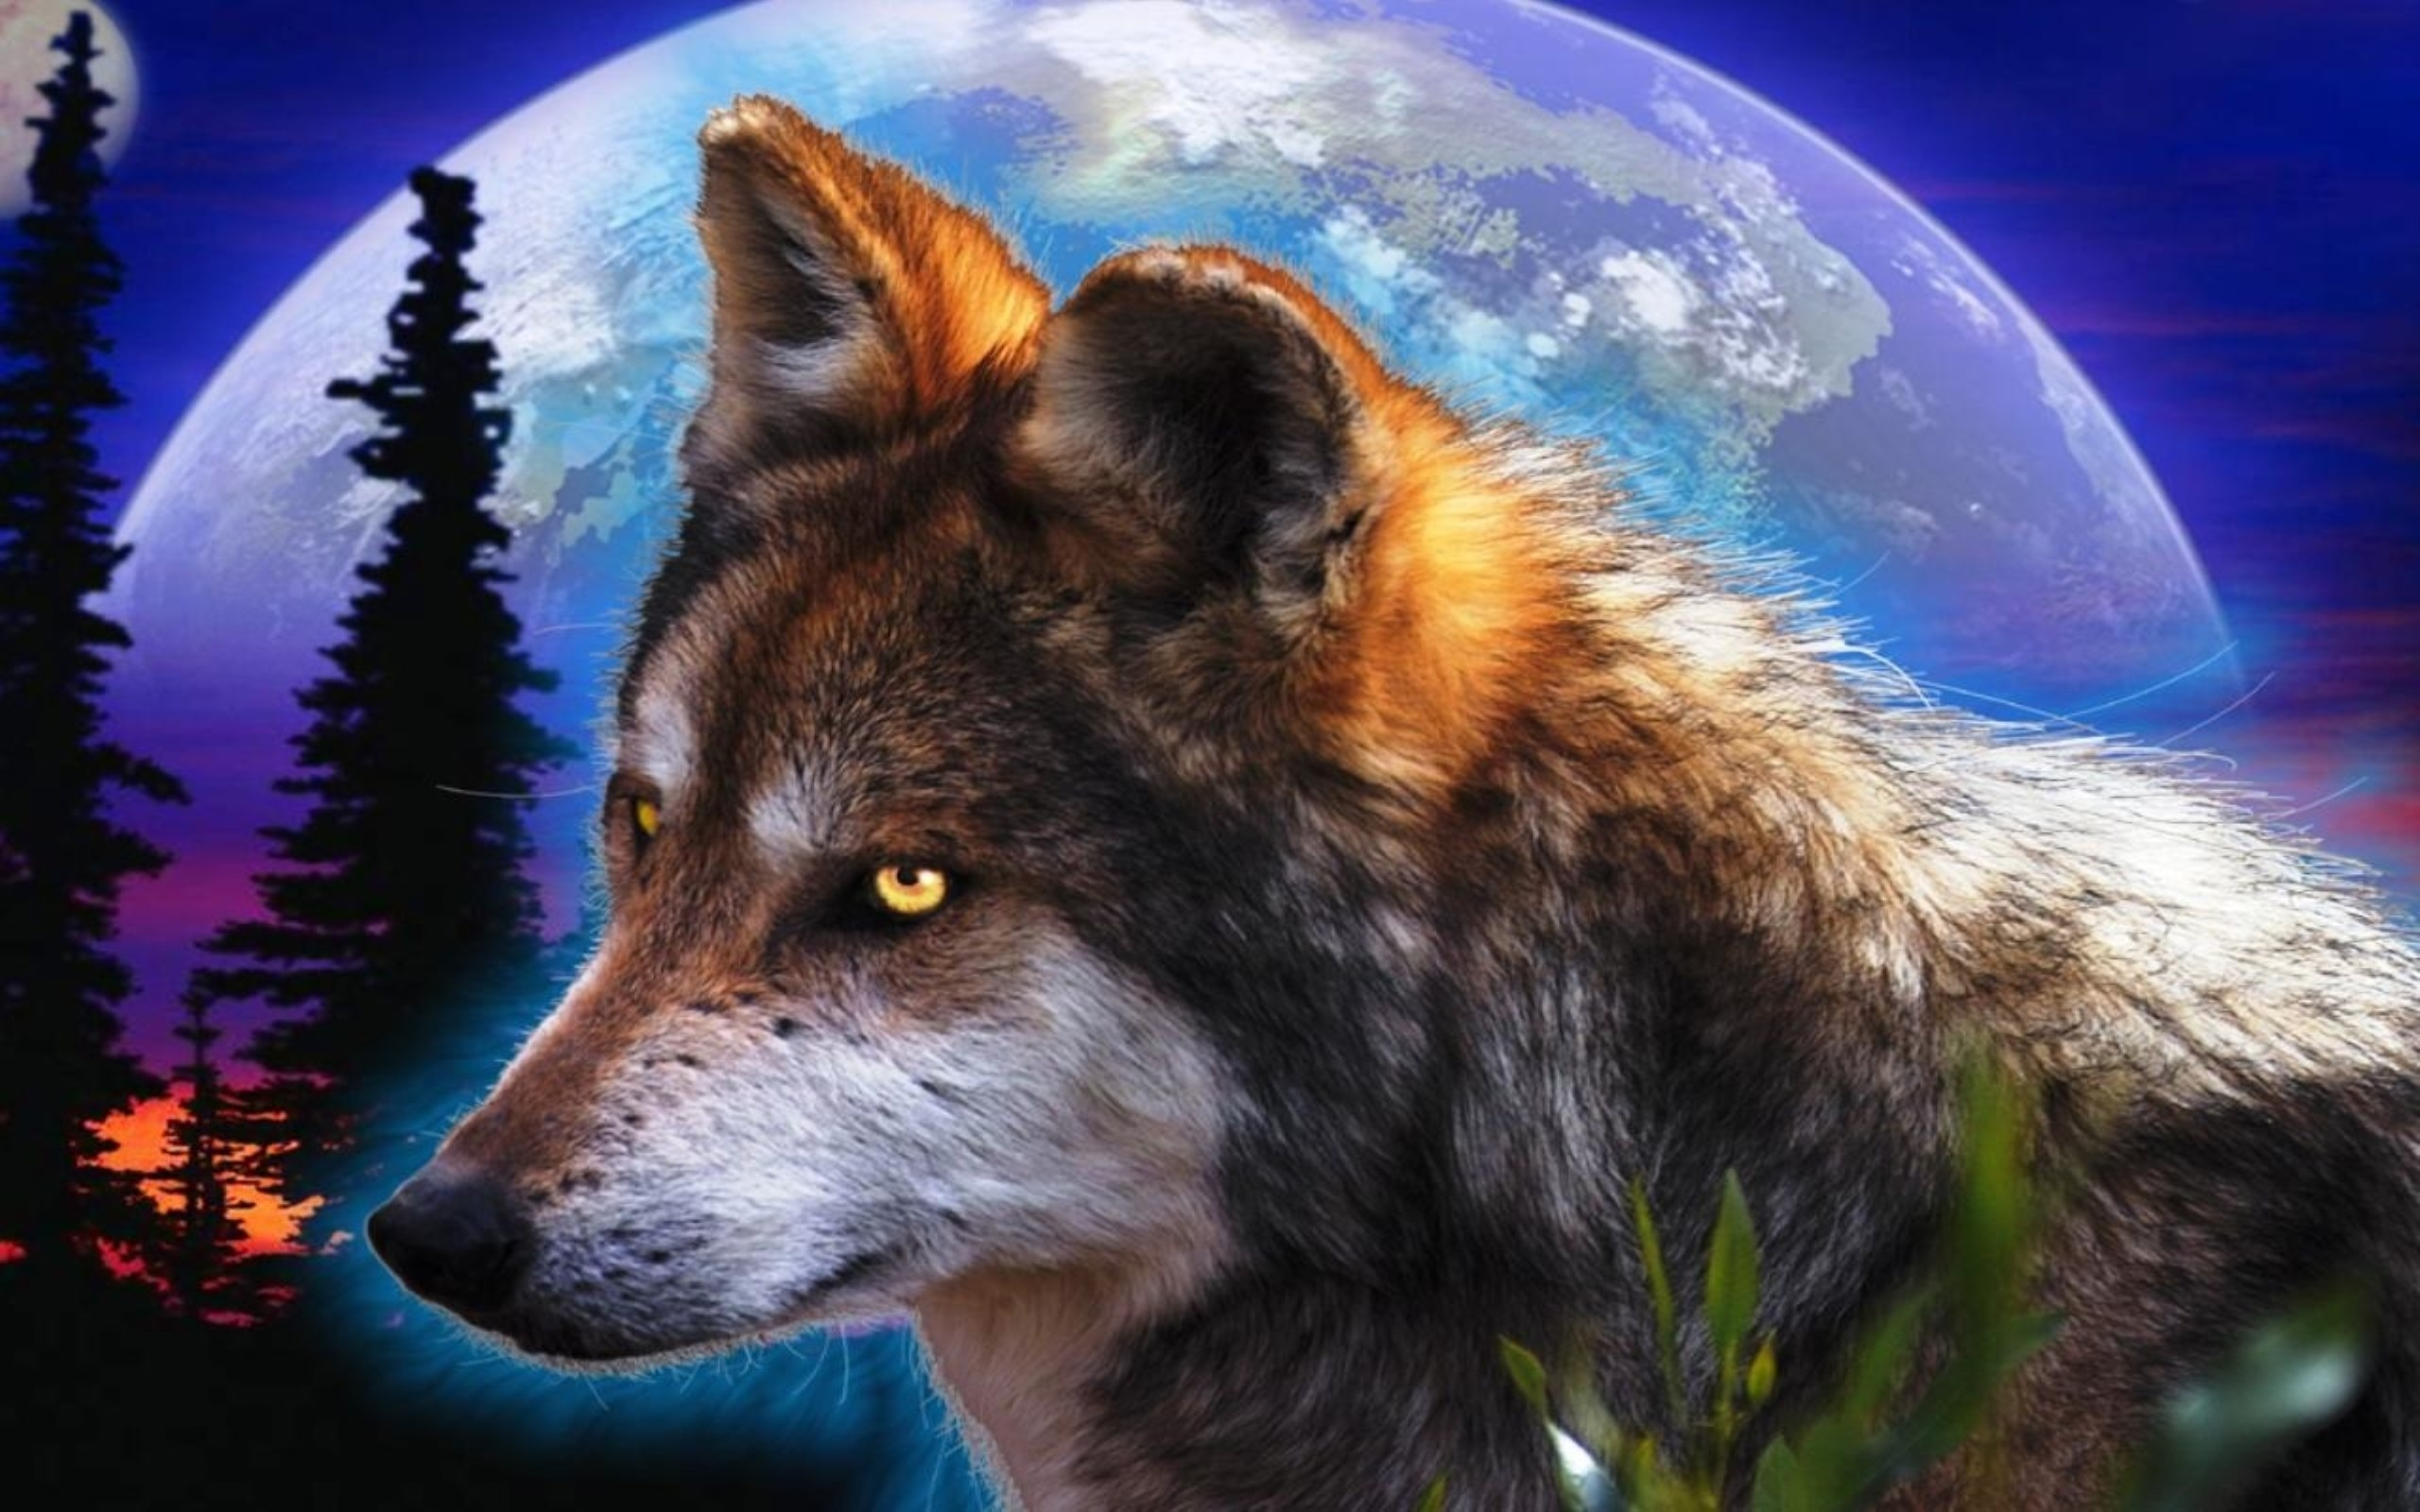 Husky Frases: Indian And Wolf Wallpaper Images (64+ Images